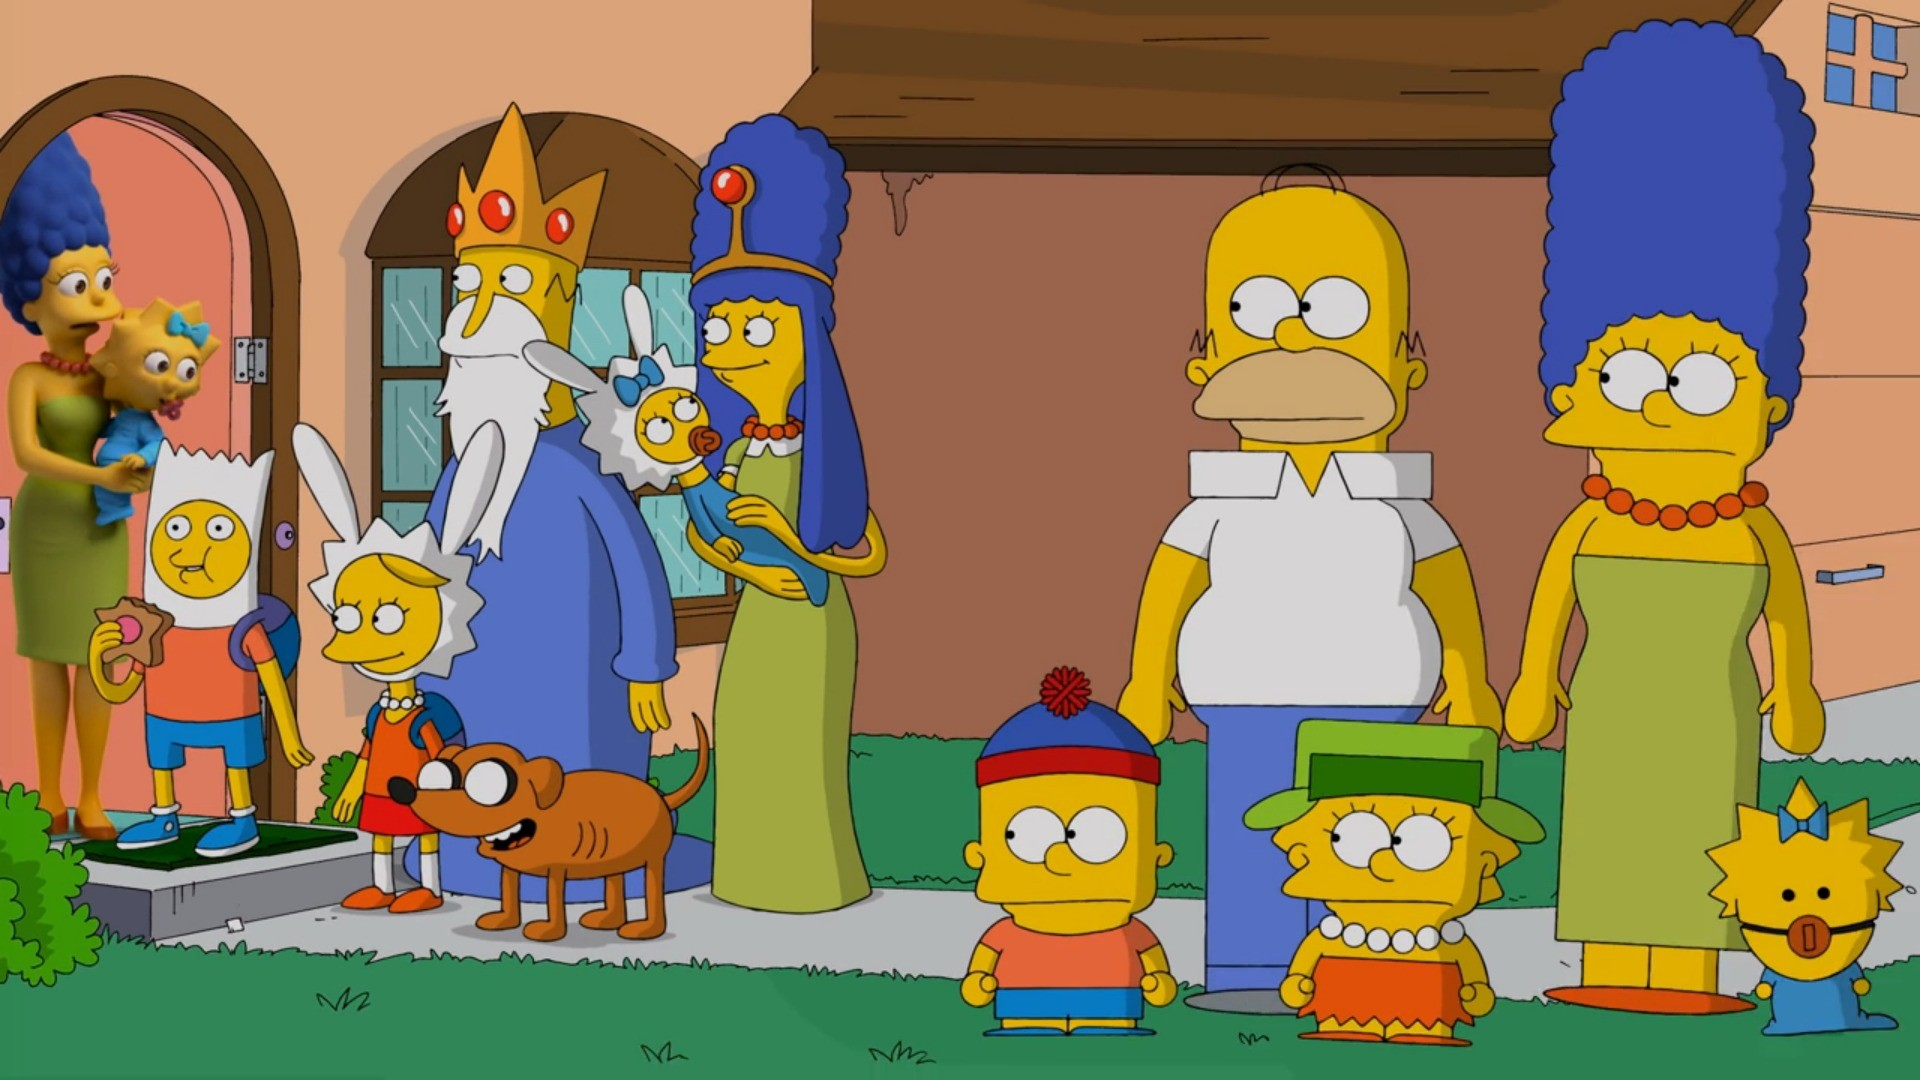 General 1920x1080 The Simpsons South Park Adventure Time Marge Simpson Maggie Simpson Lisa Simpson Bart Simpson Homer Simpson crossover